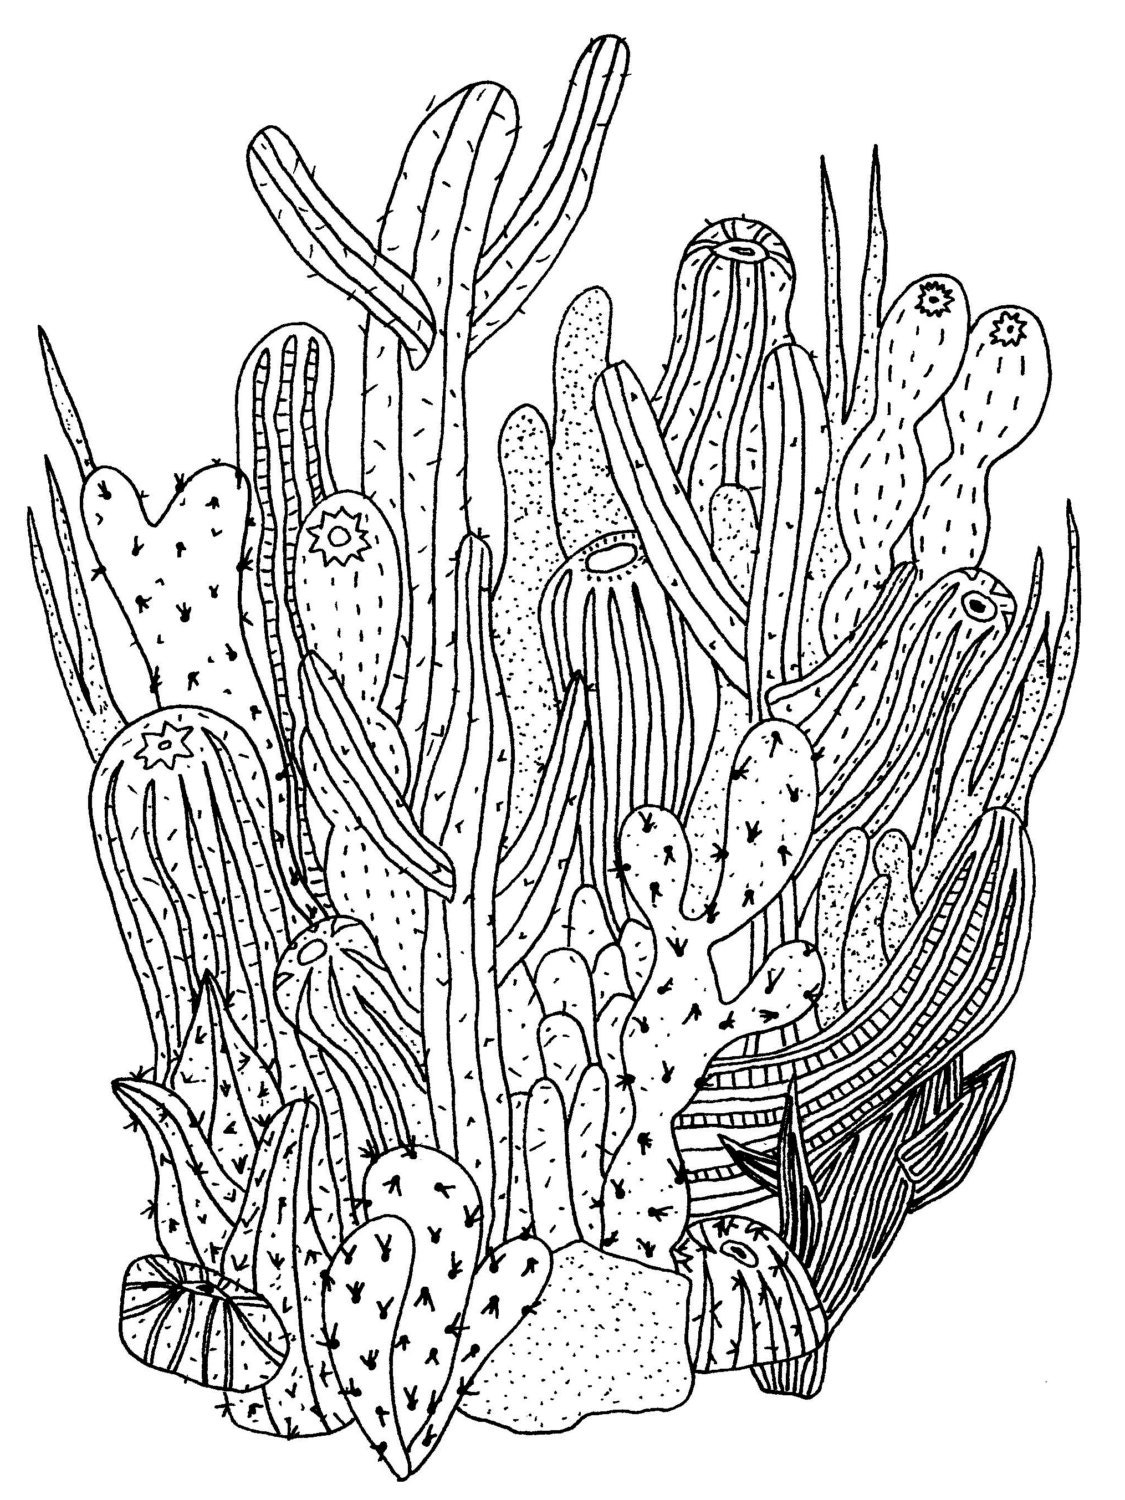 Cactus Print by gospelofwonderland on Etsy